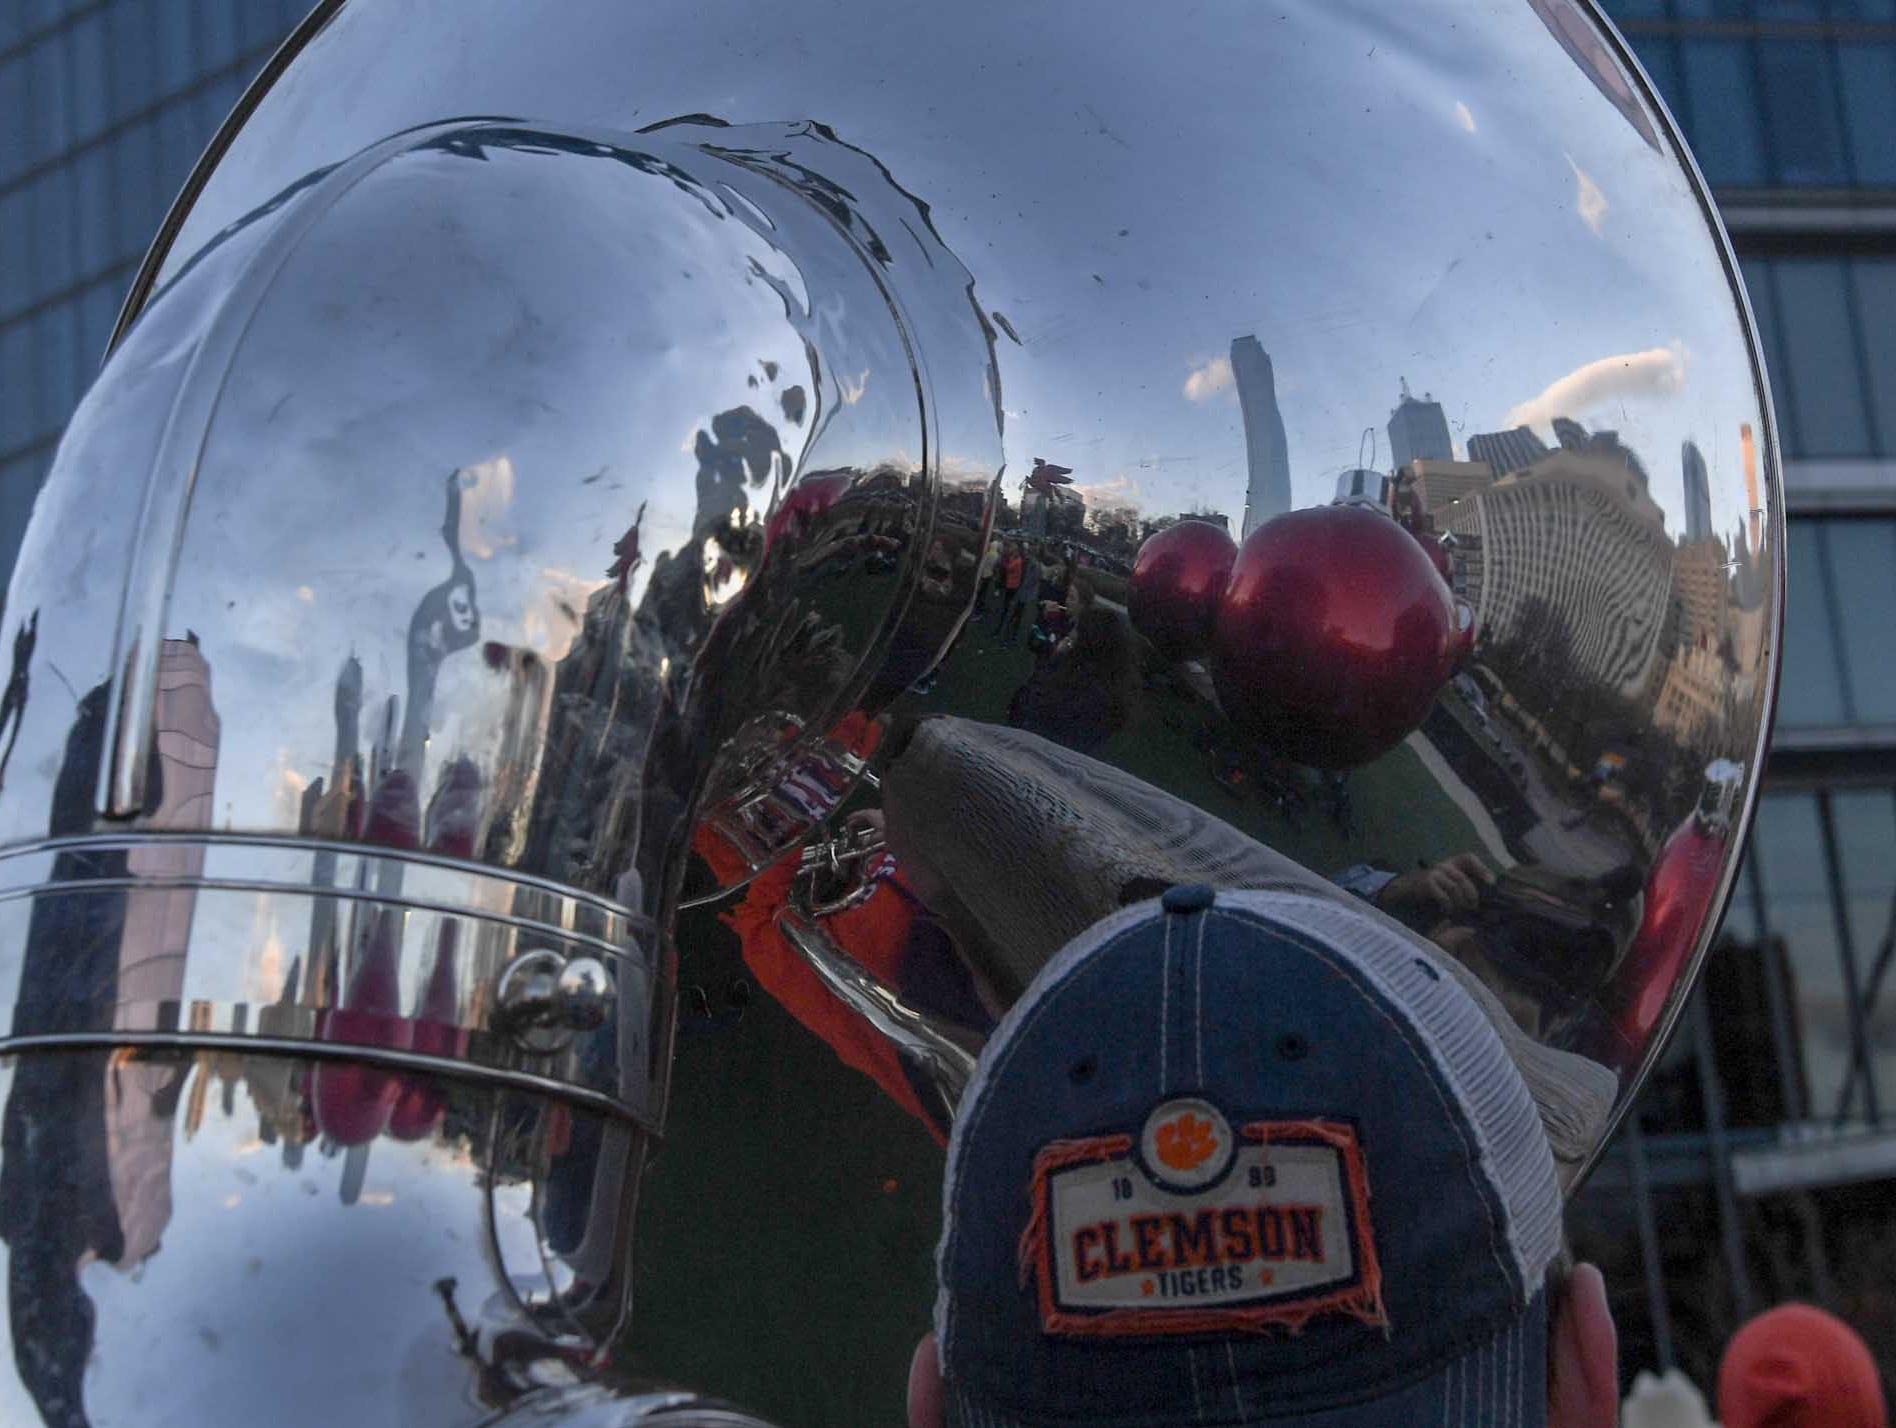 A skyline of downtown buildings reflect in a tuba during Clemson Band practice outside the Omni in Dallas December 27, 2018.